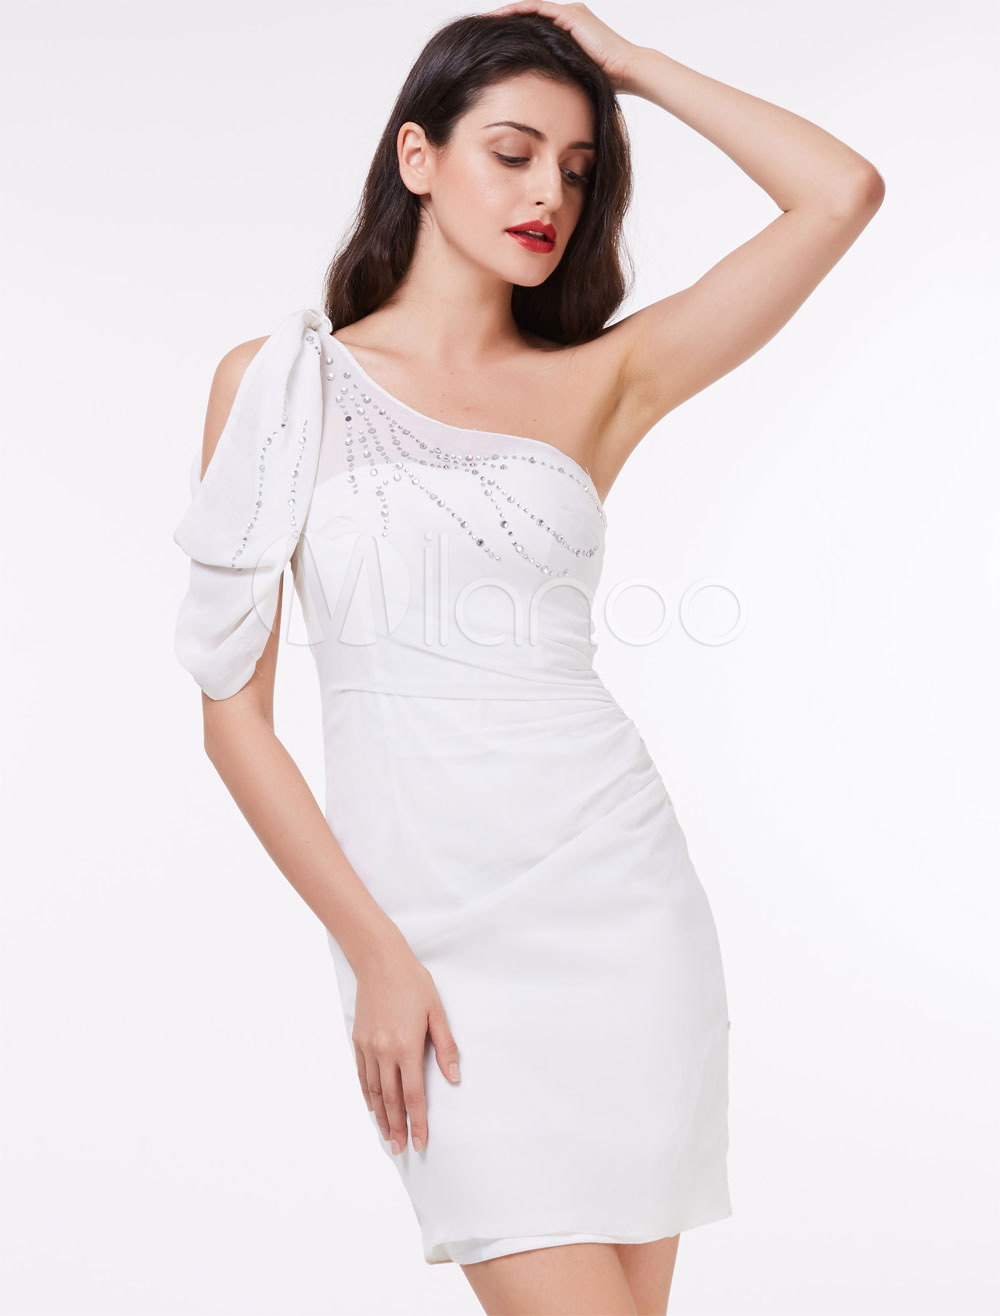 Buy White Cocktail Dresses Short Sheath One Shoulder Beading Column Mini Party Dresses for $61.59 in Milanoo store